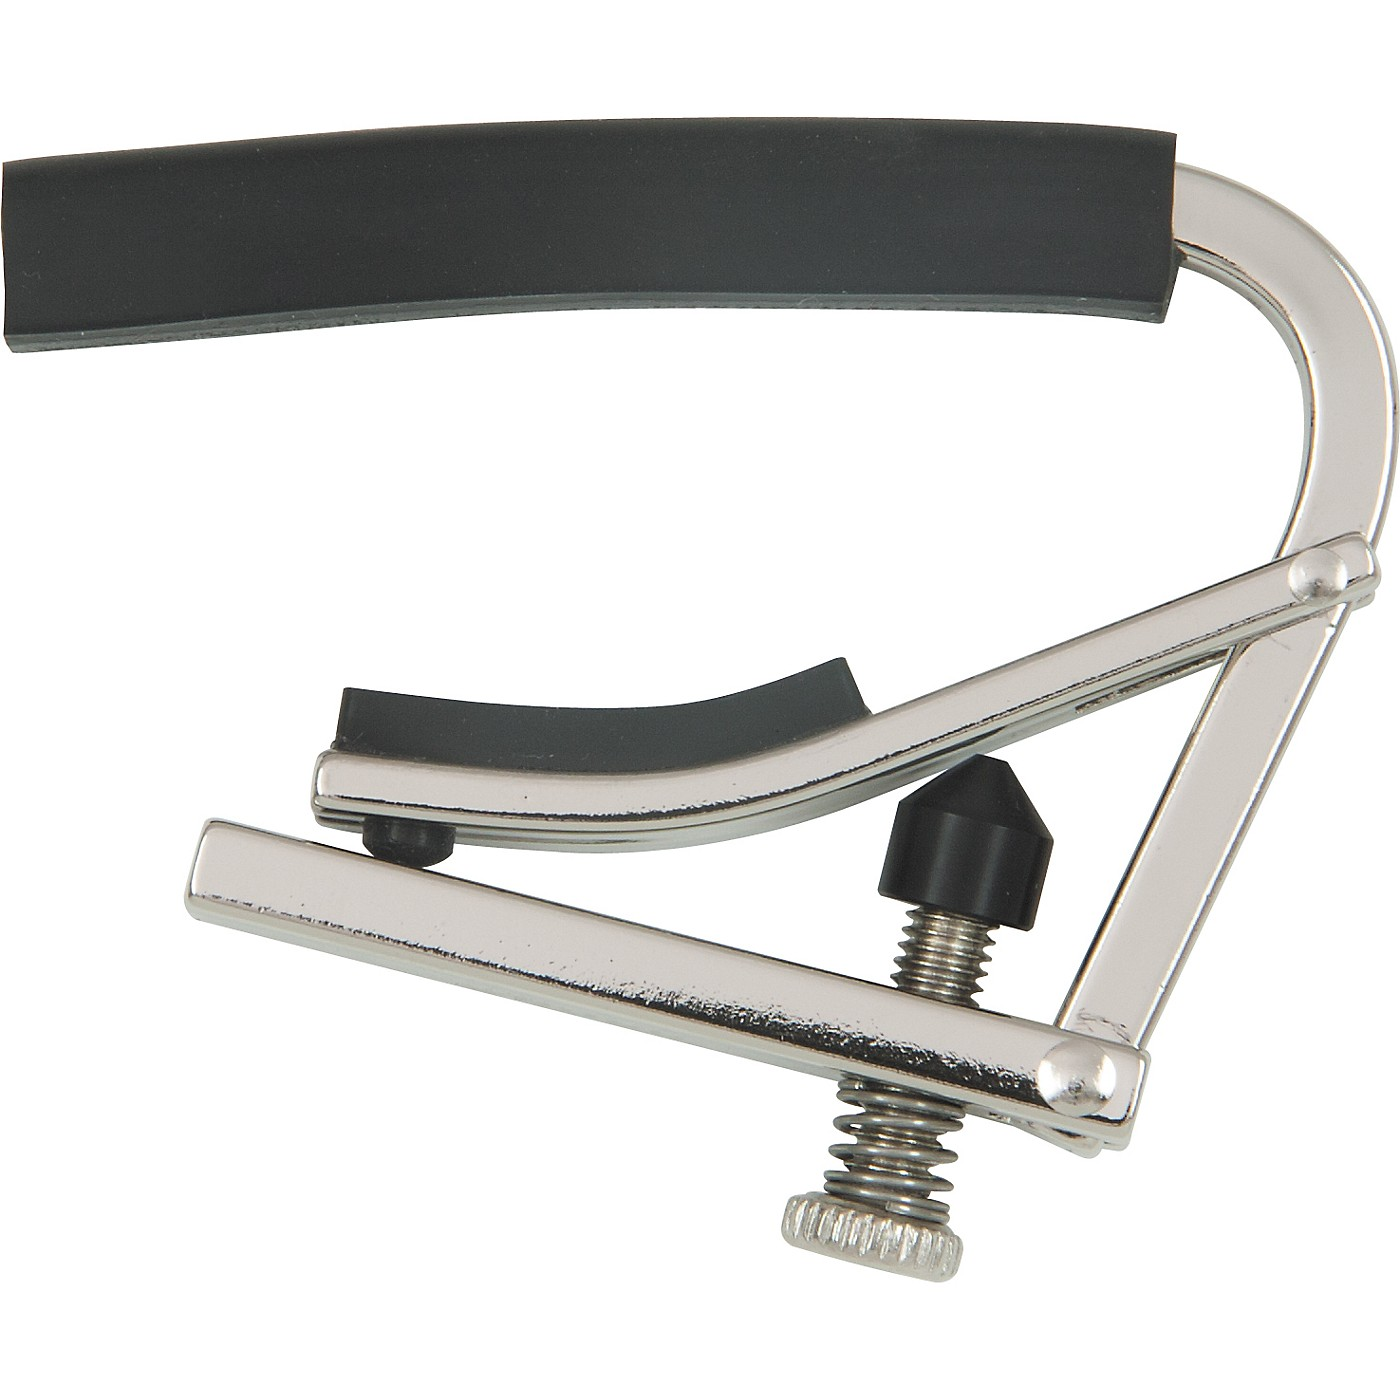 Shubb Lightweight Aluminum Capo for 12 String Guitar thumbnail